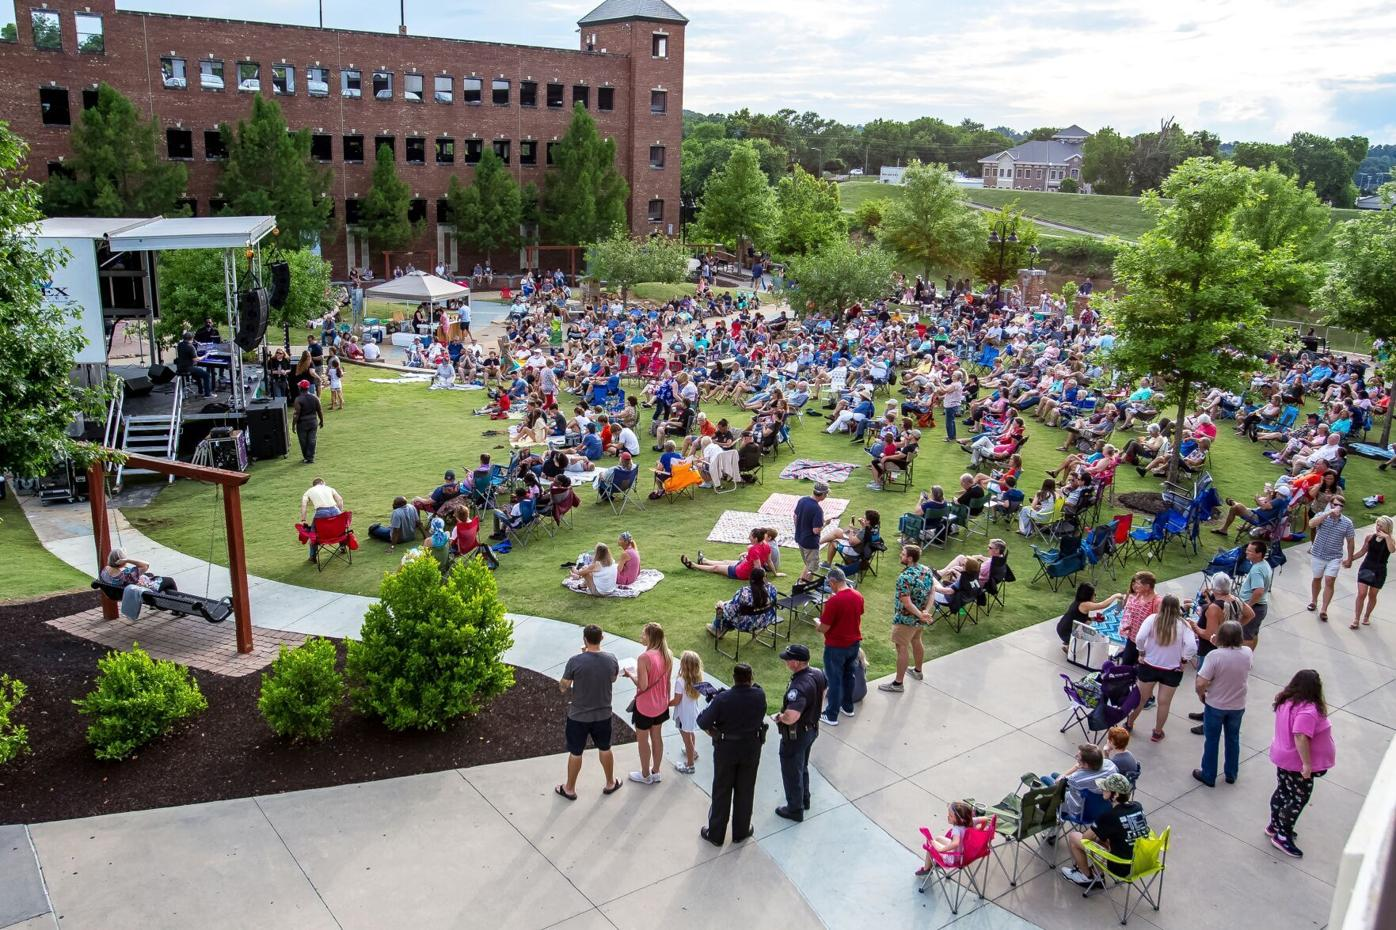 Dueling pianos wow crowd at First Friday concert